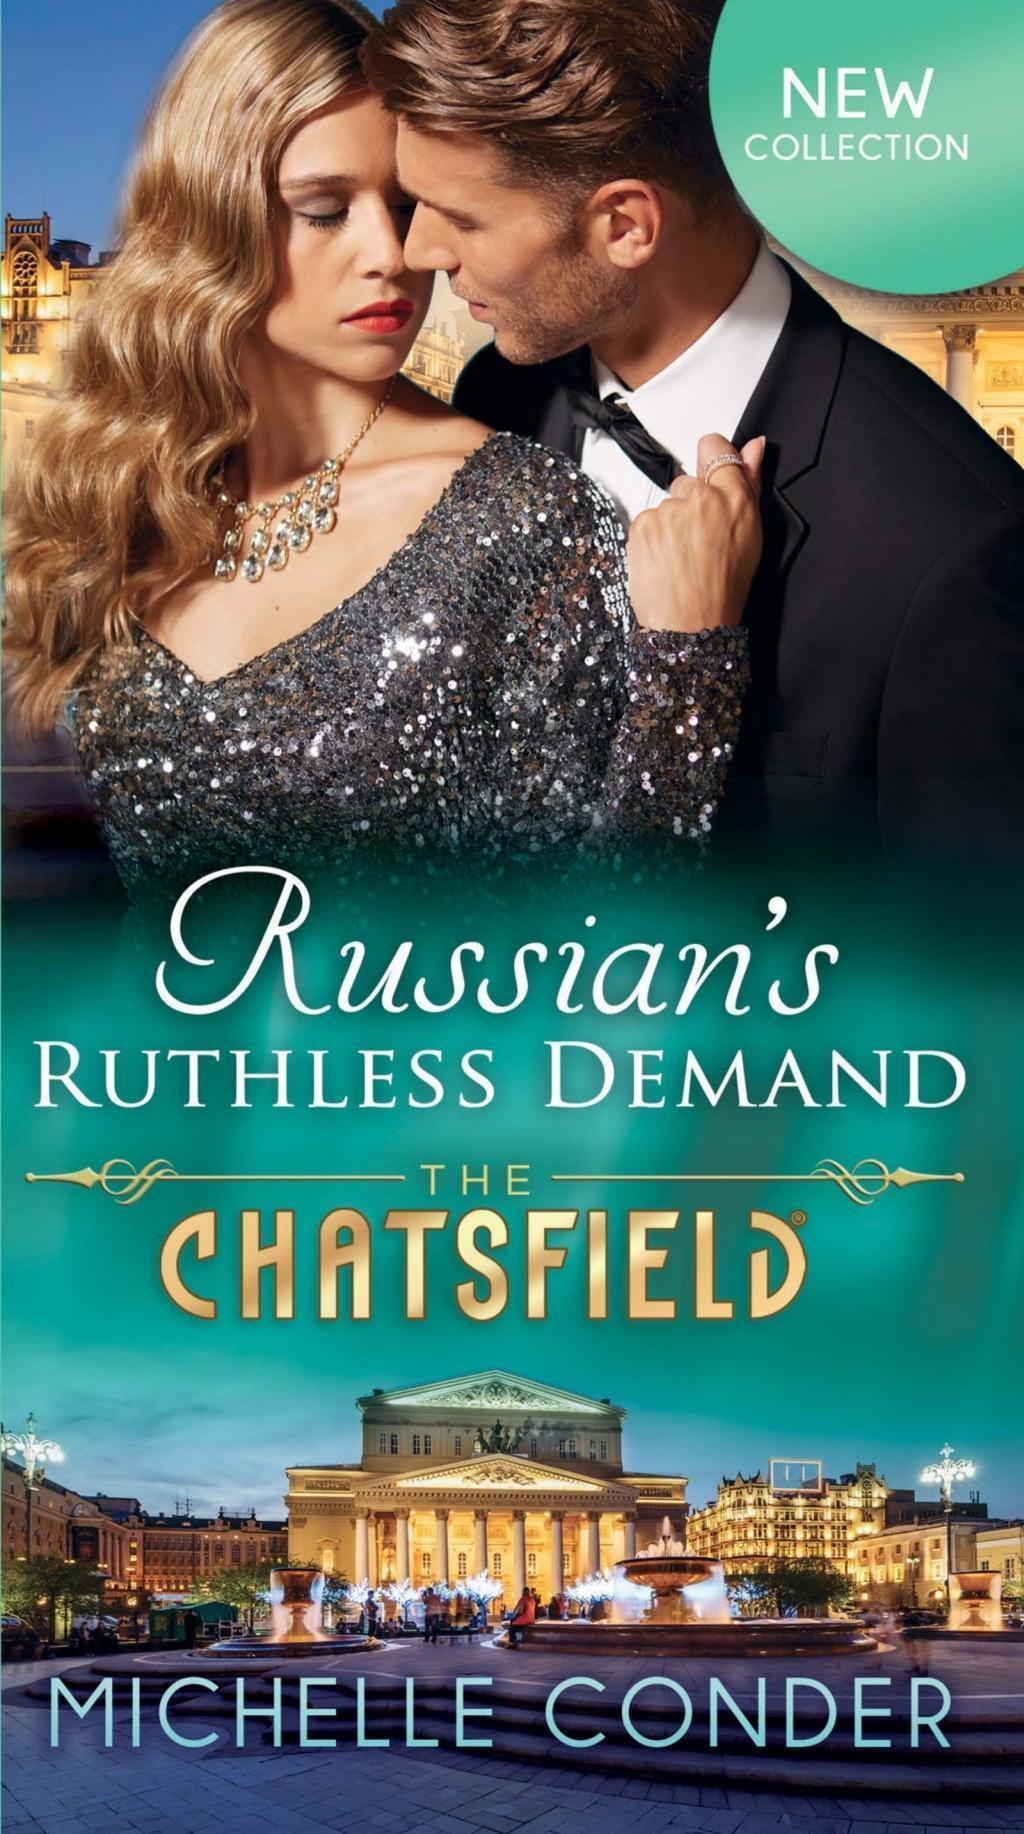 Russian's Ruthless Demand (Mills & Boon M&B) (The Chatsfield, Book 14)